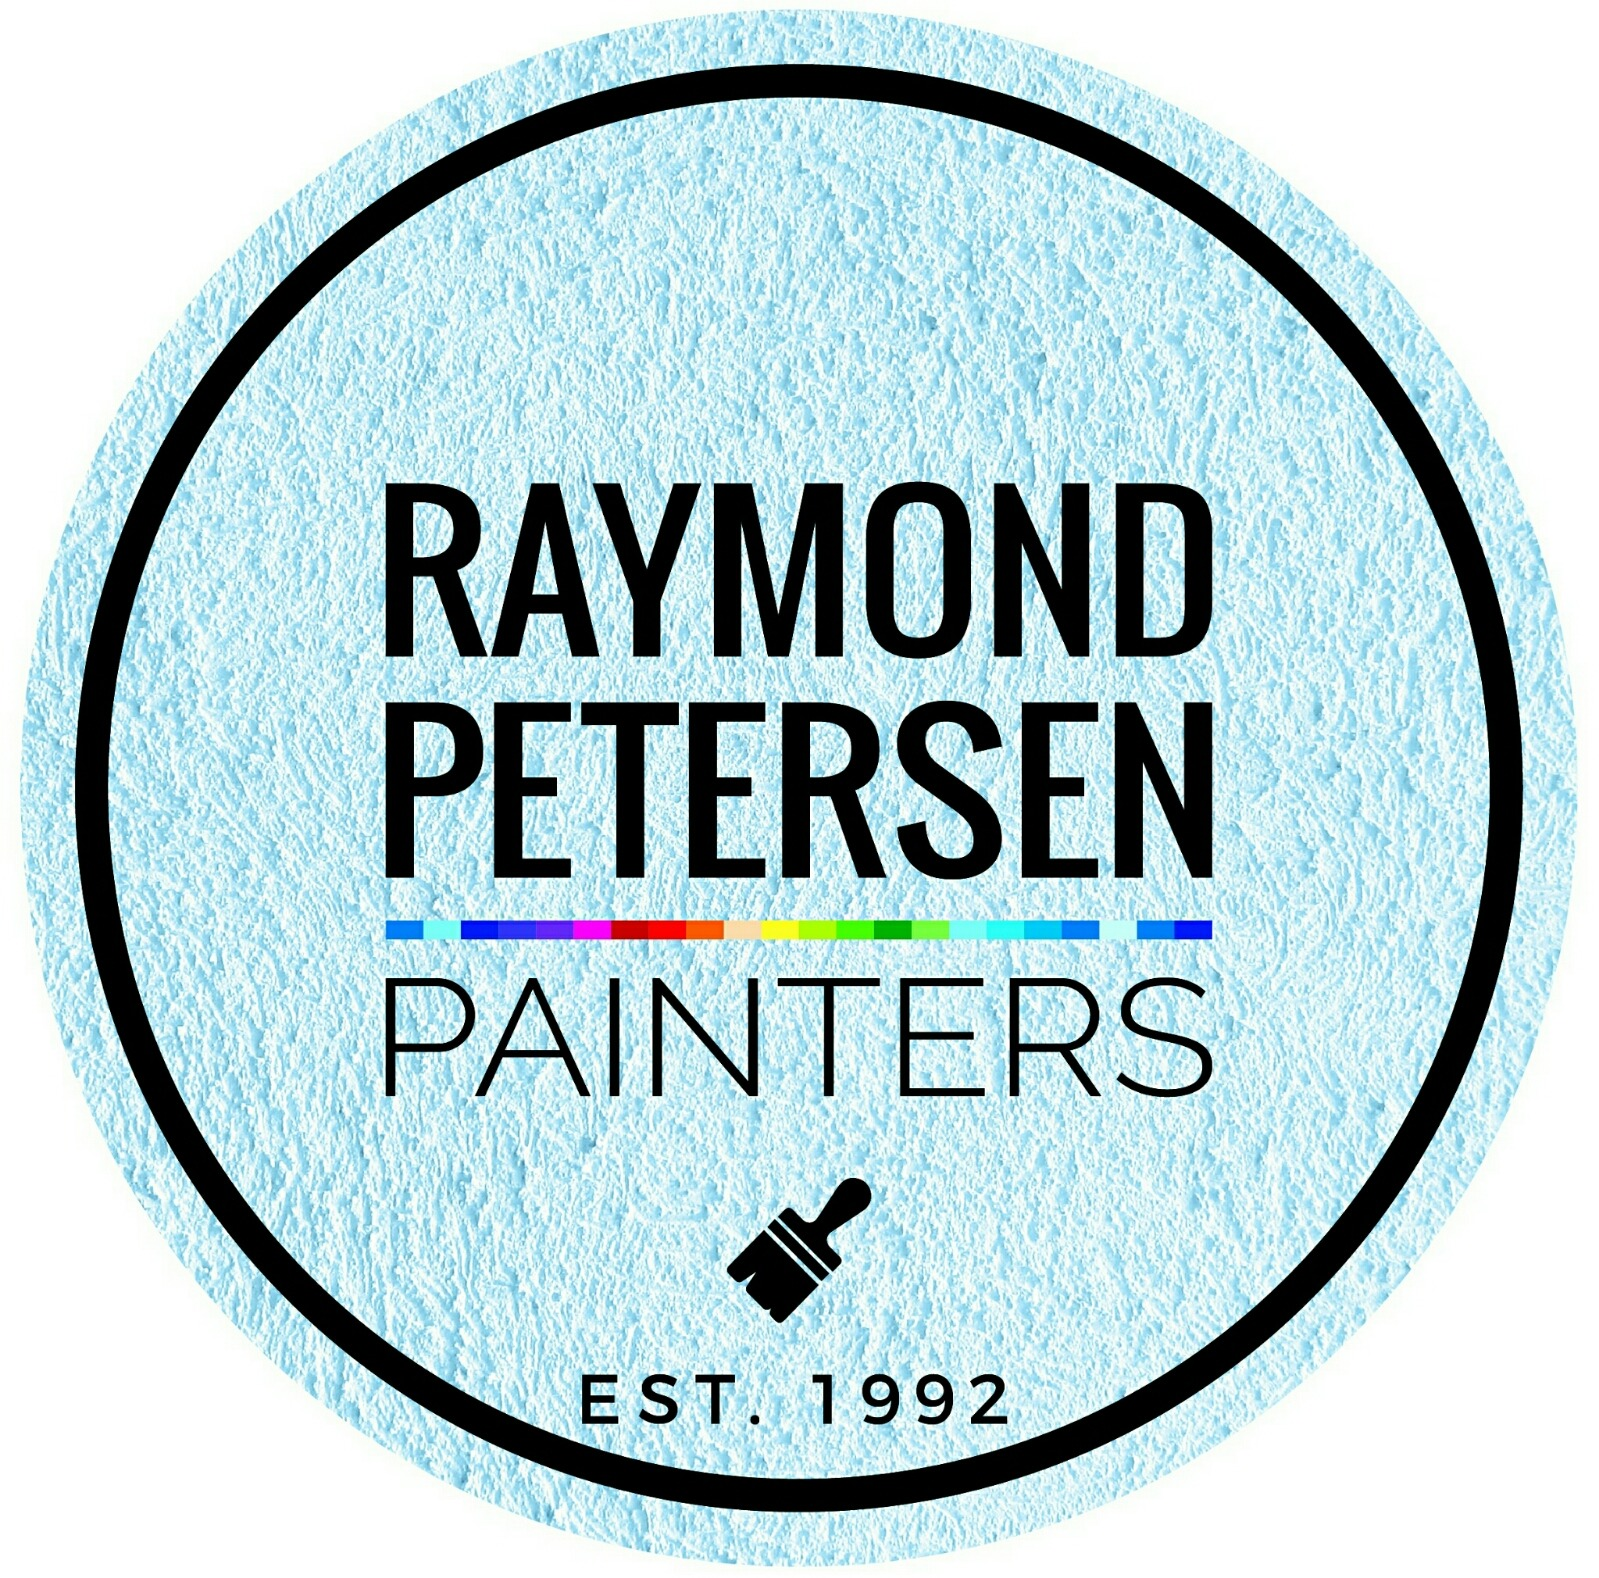 Domestic and personalized painting services.